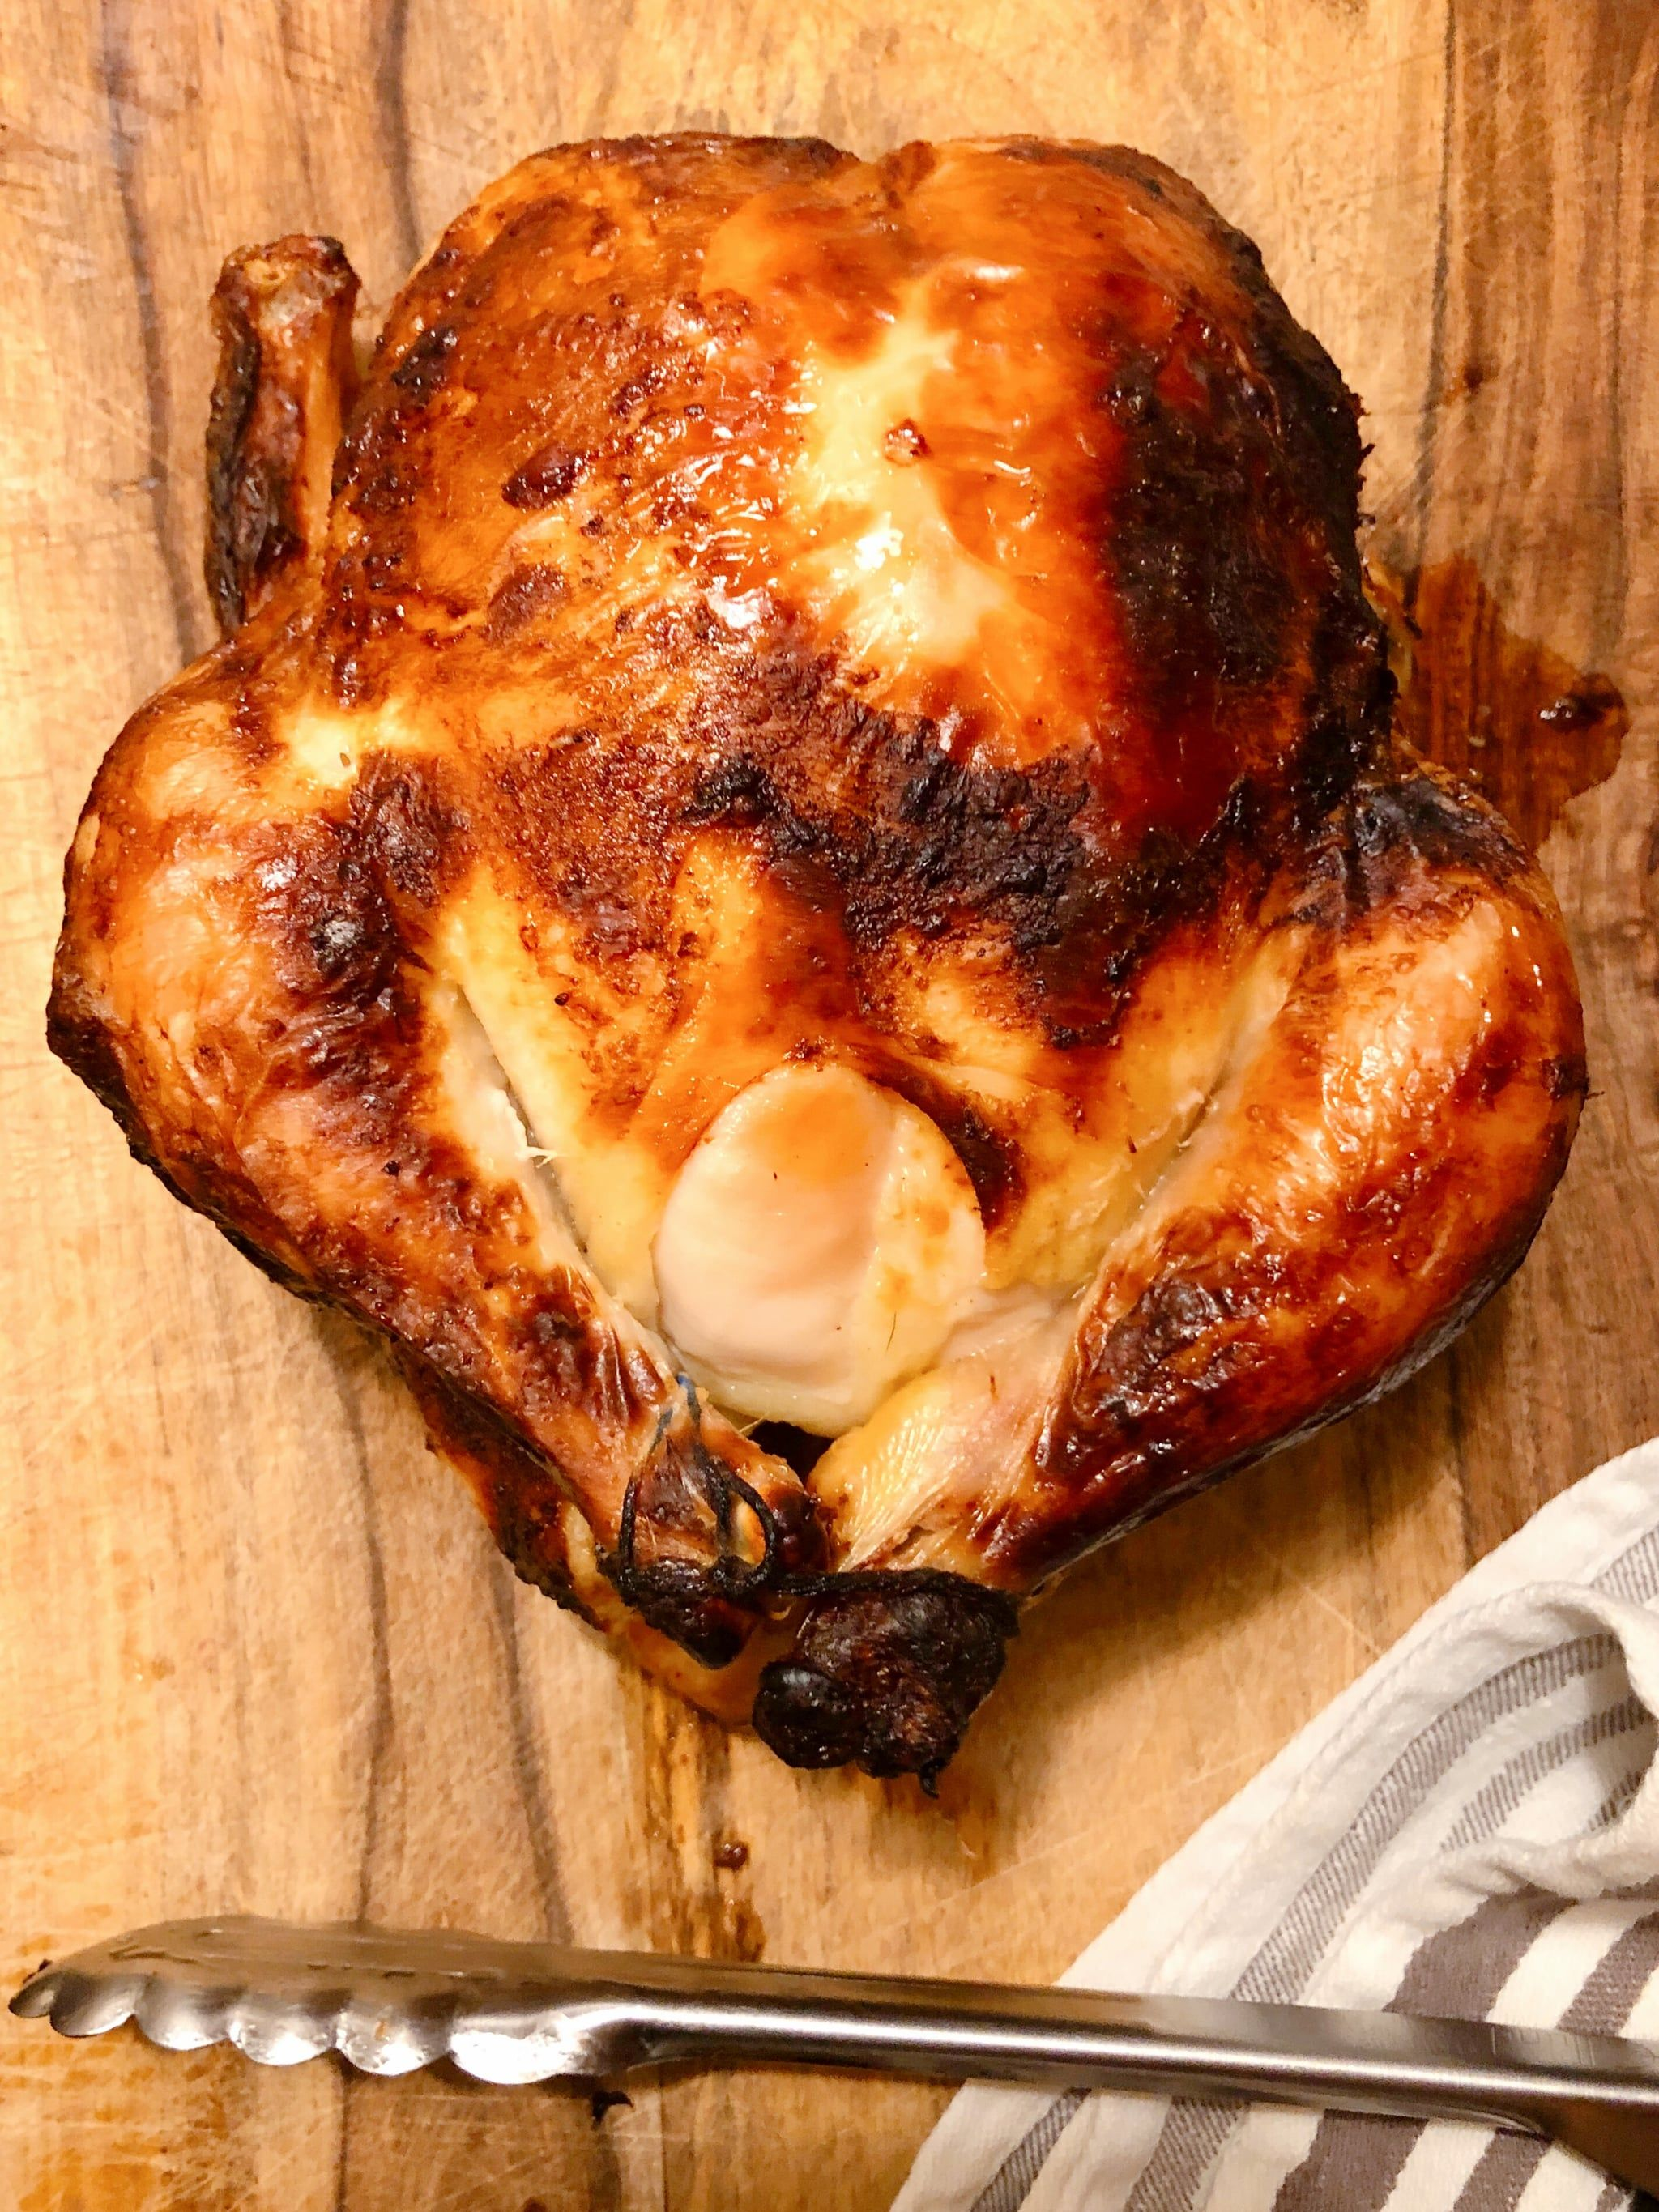 You Ll Never Look Back After Trying Samin Nosrat S Buttermilk Marinated Roast Chicken In 2020 Roast Chicken Recipes Buttermilk Marinated Chicken Roasted Chicken